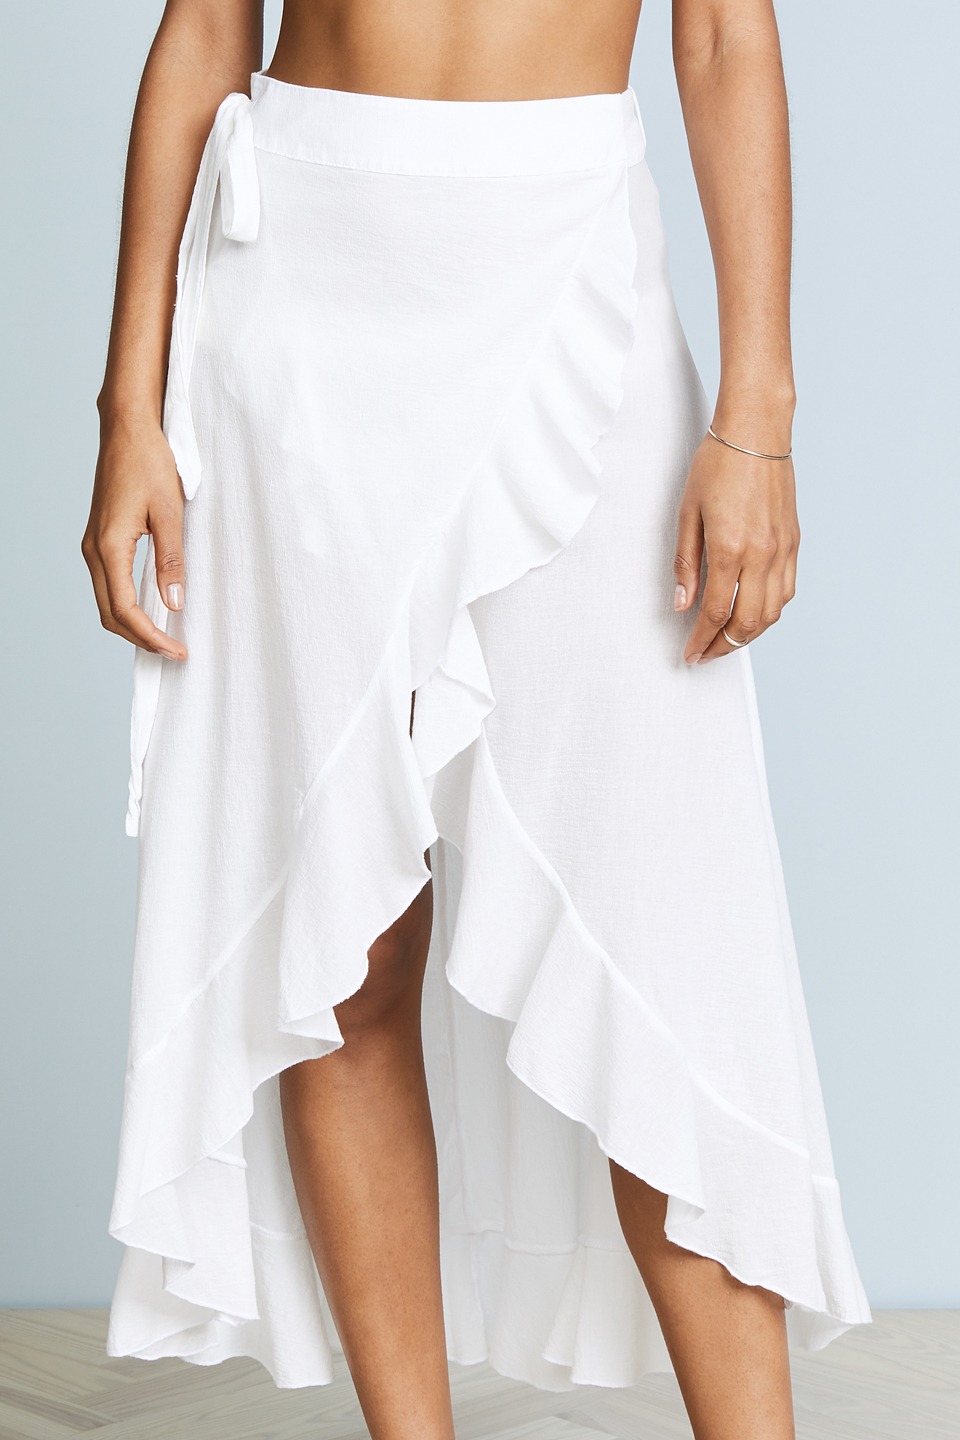 Solana wrap skirt - white